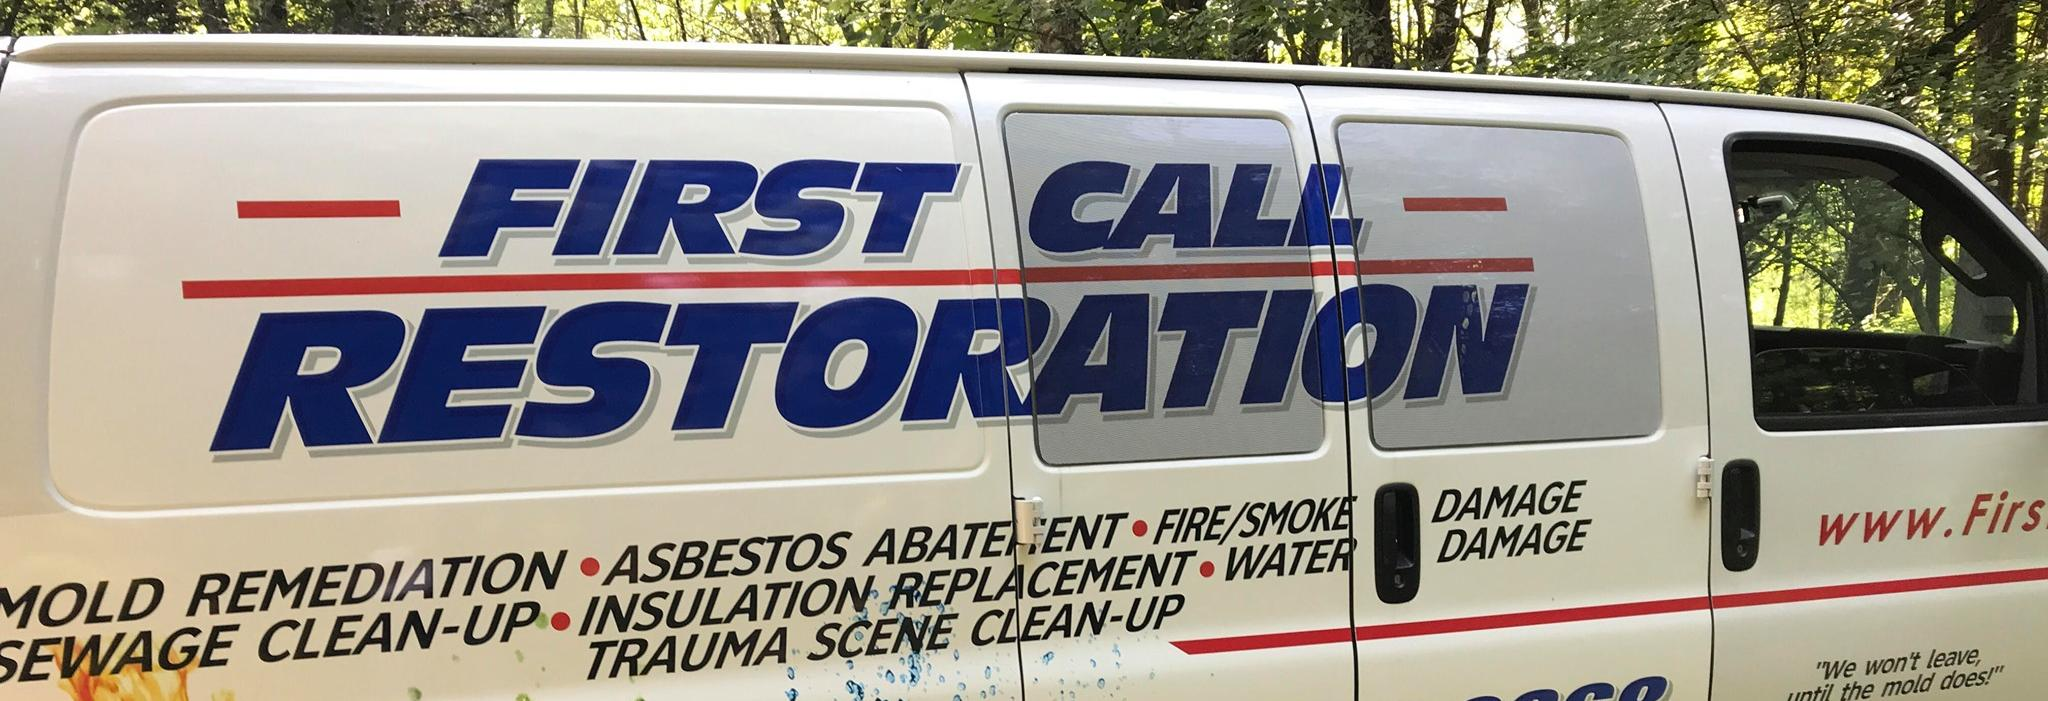 First Call Restoration - Poughkeepsie, NY banner